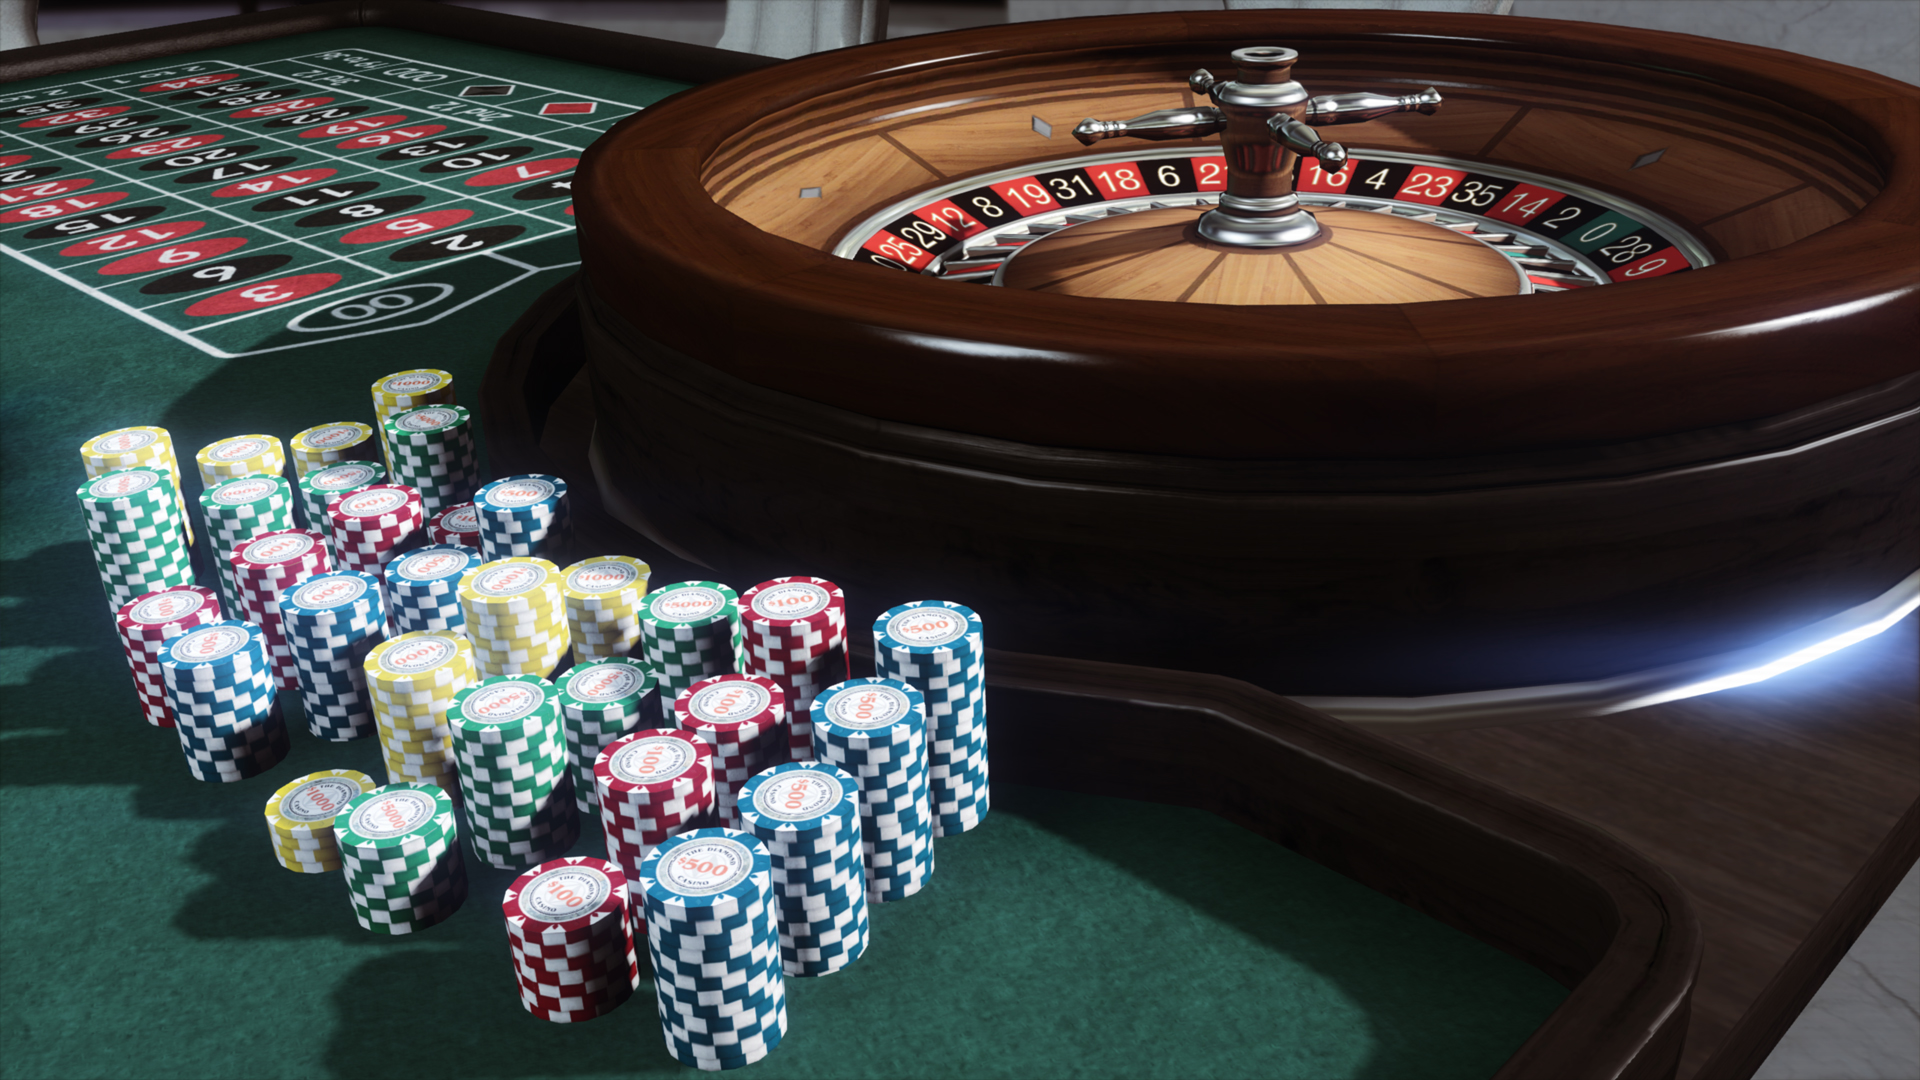 Why on the overall poker players are losers